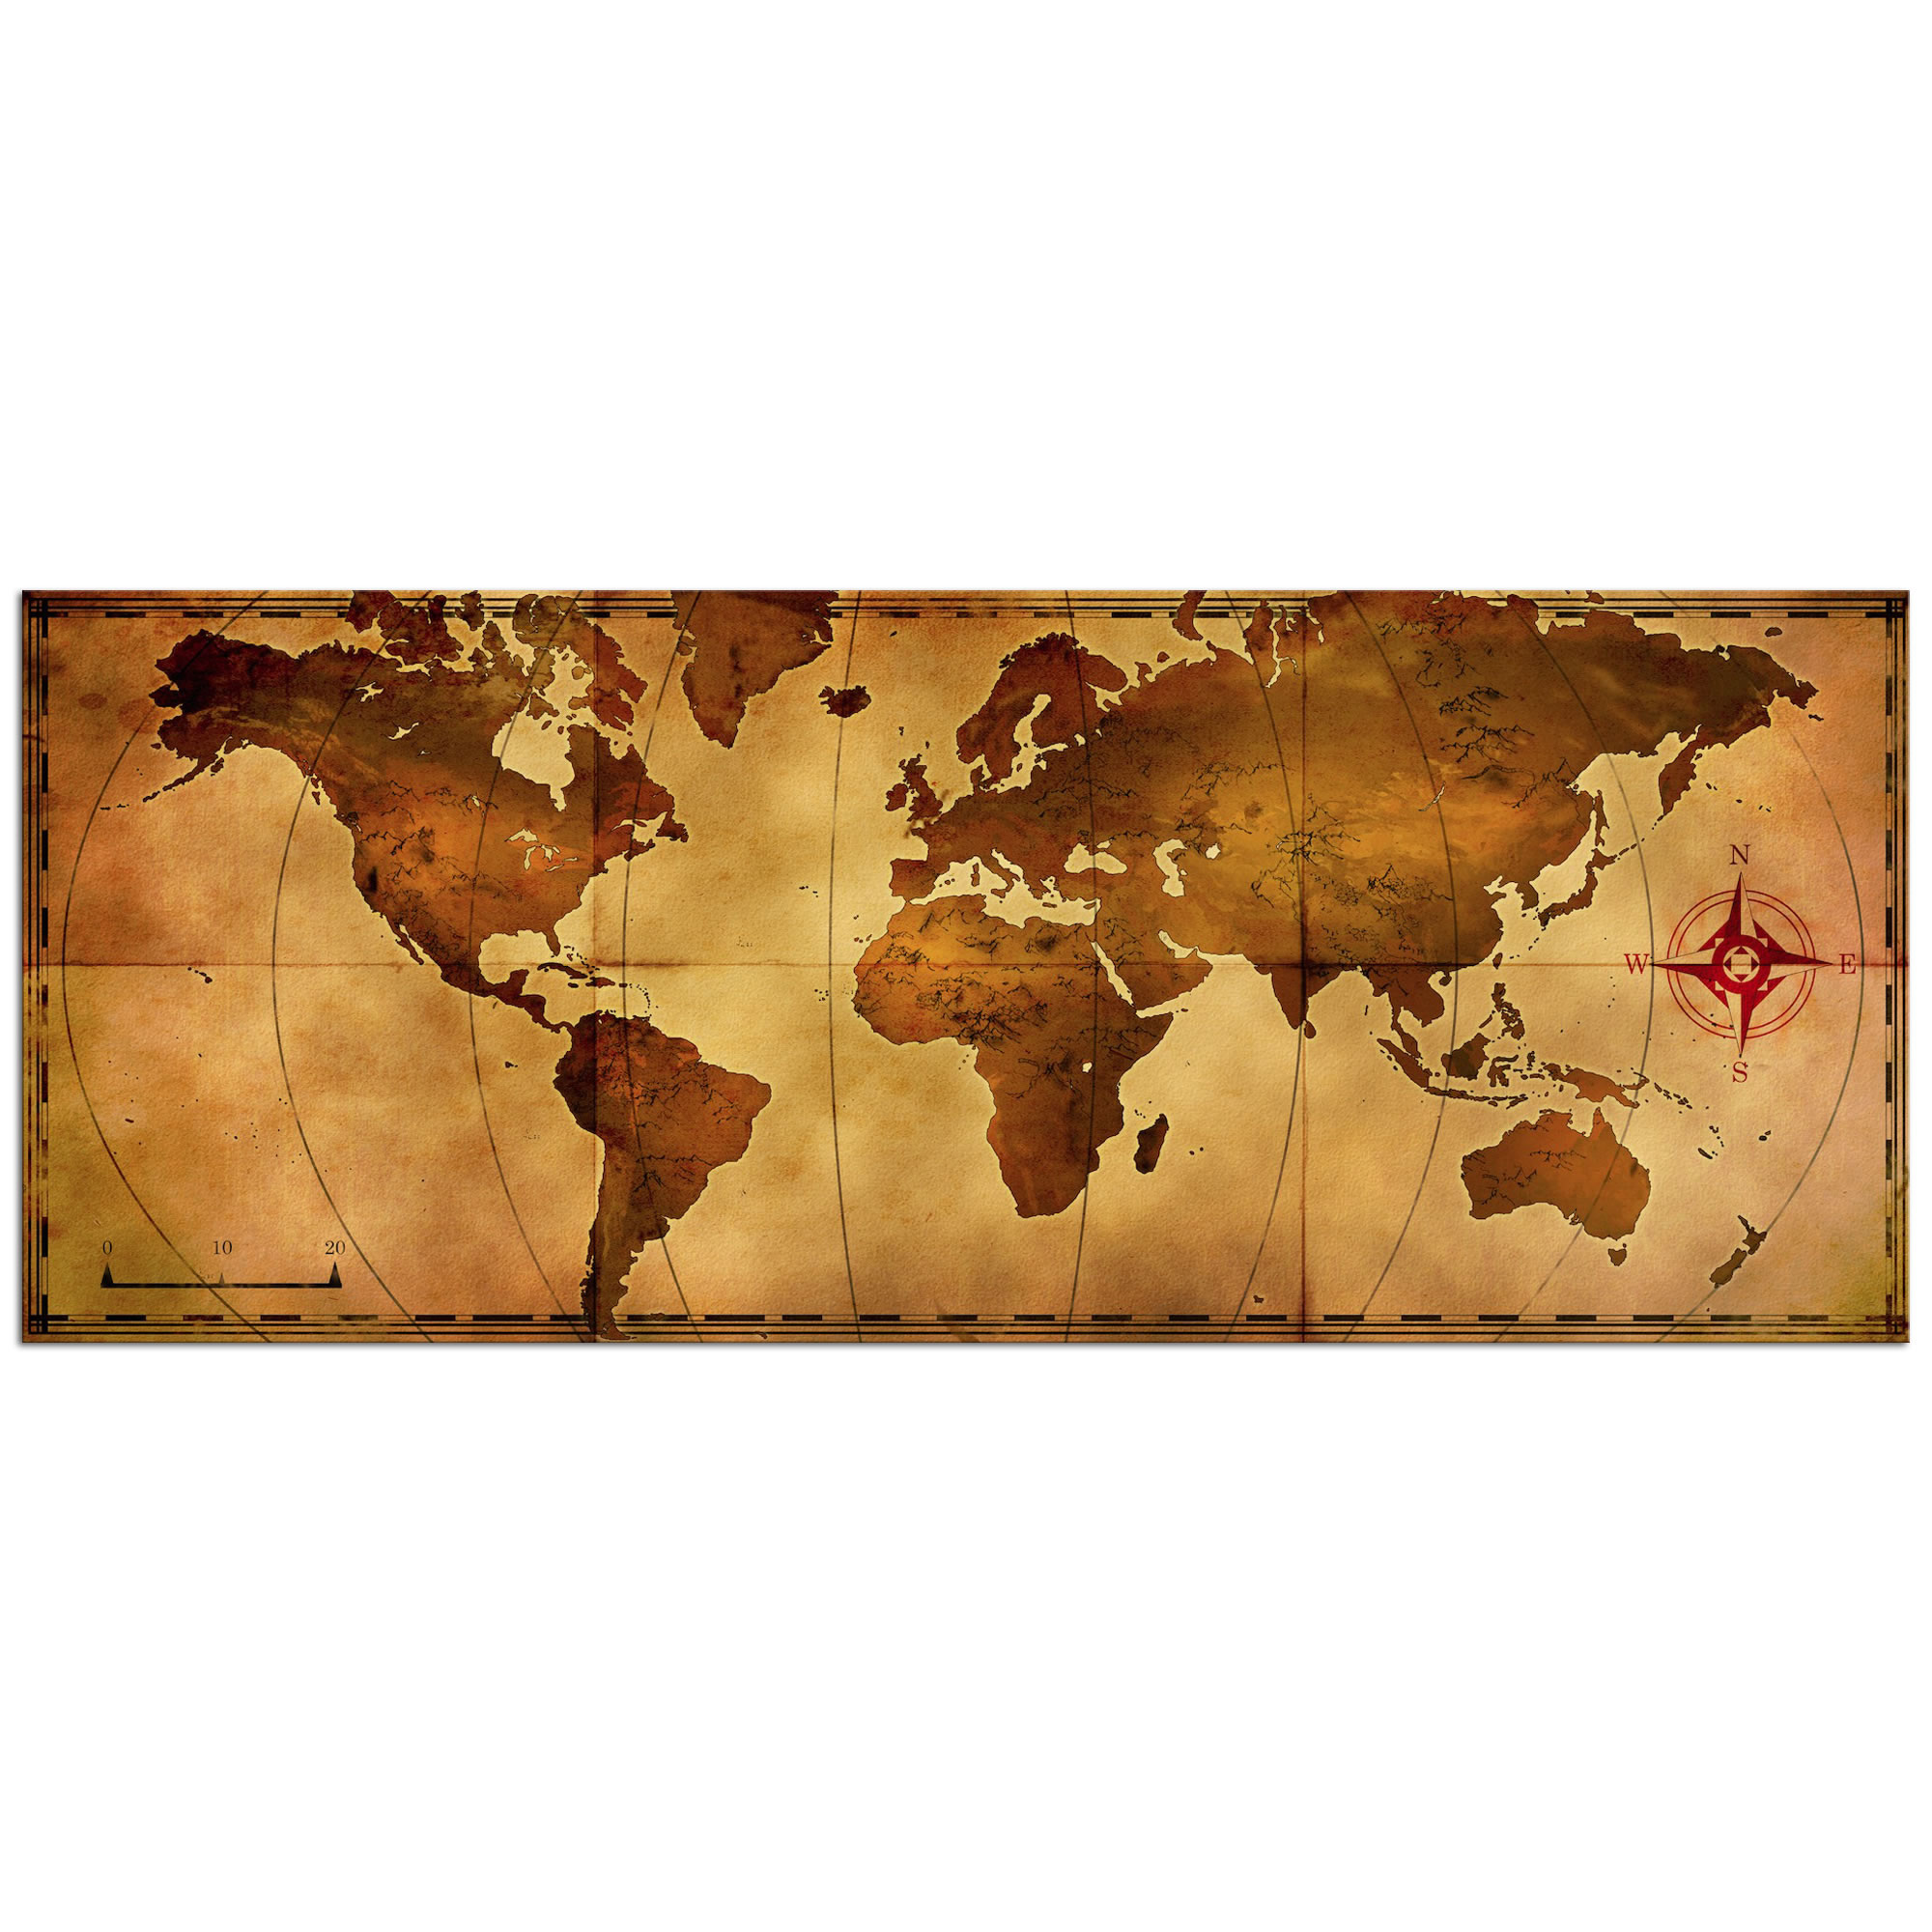 Old World Map - Contemporary Metal Wall Art